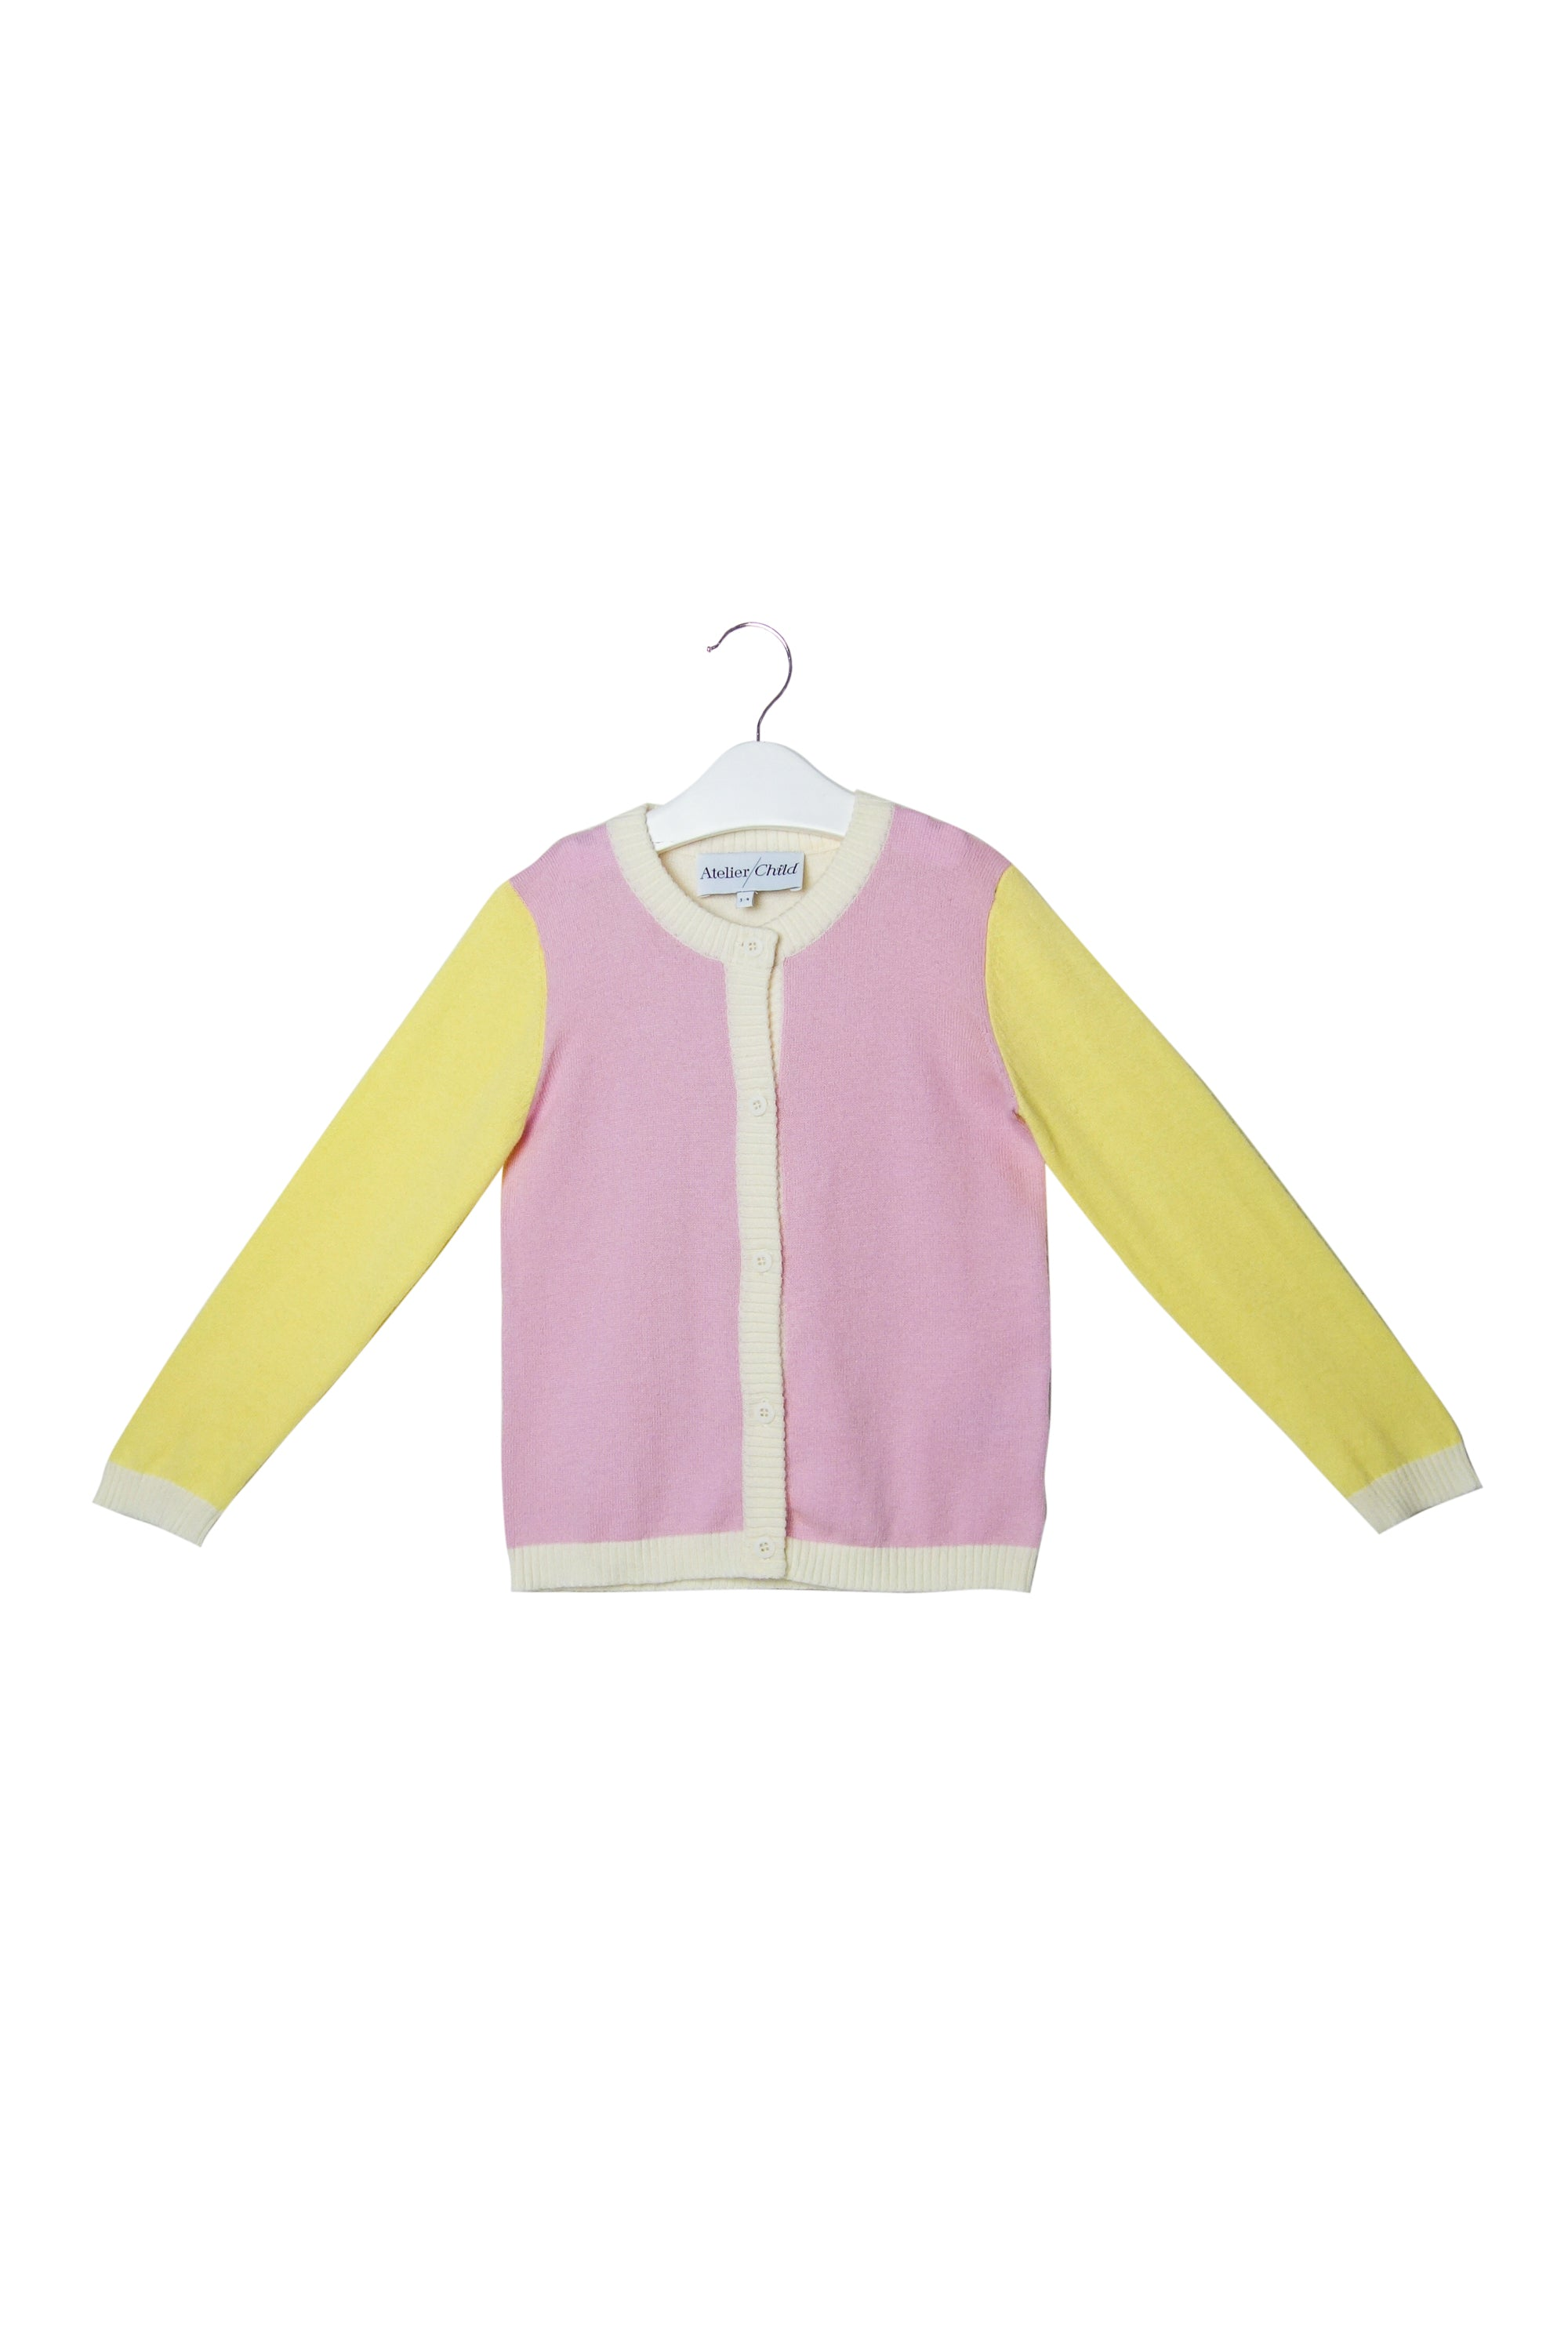 10002849 Atelier/Child Kids~Cardigan 4-5T at Retykle